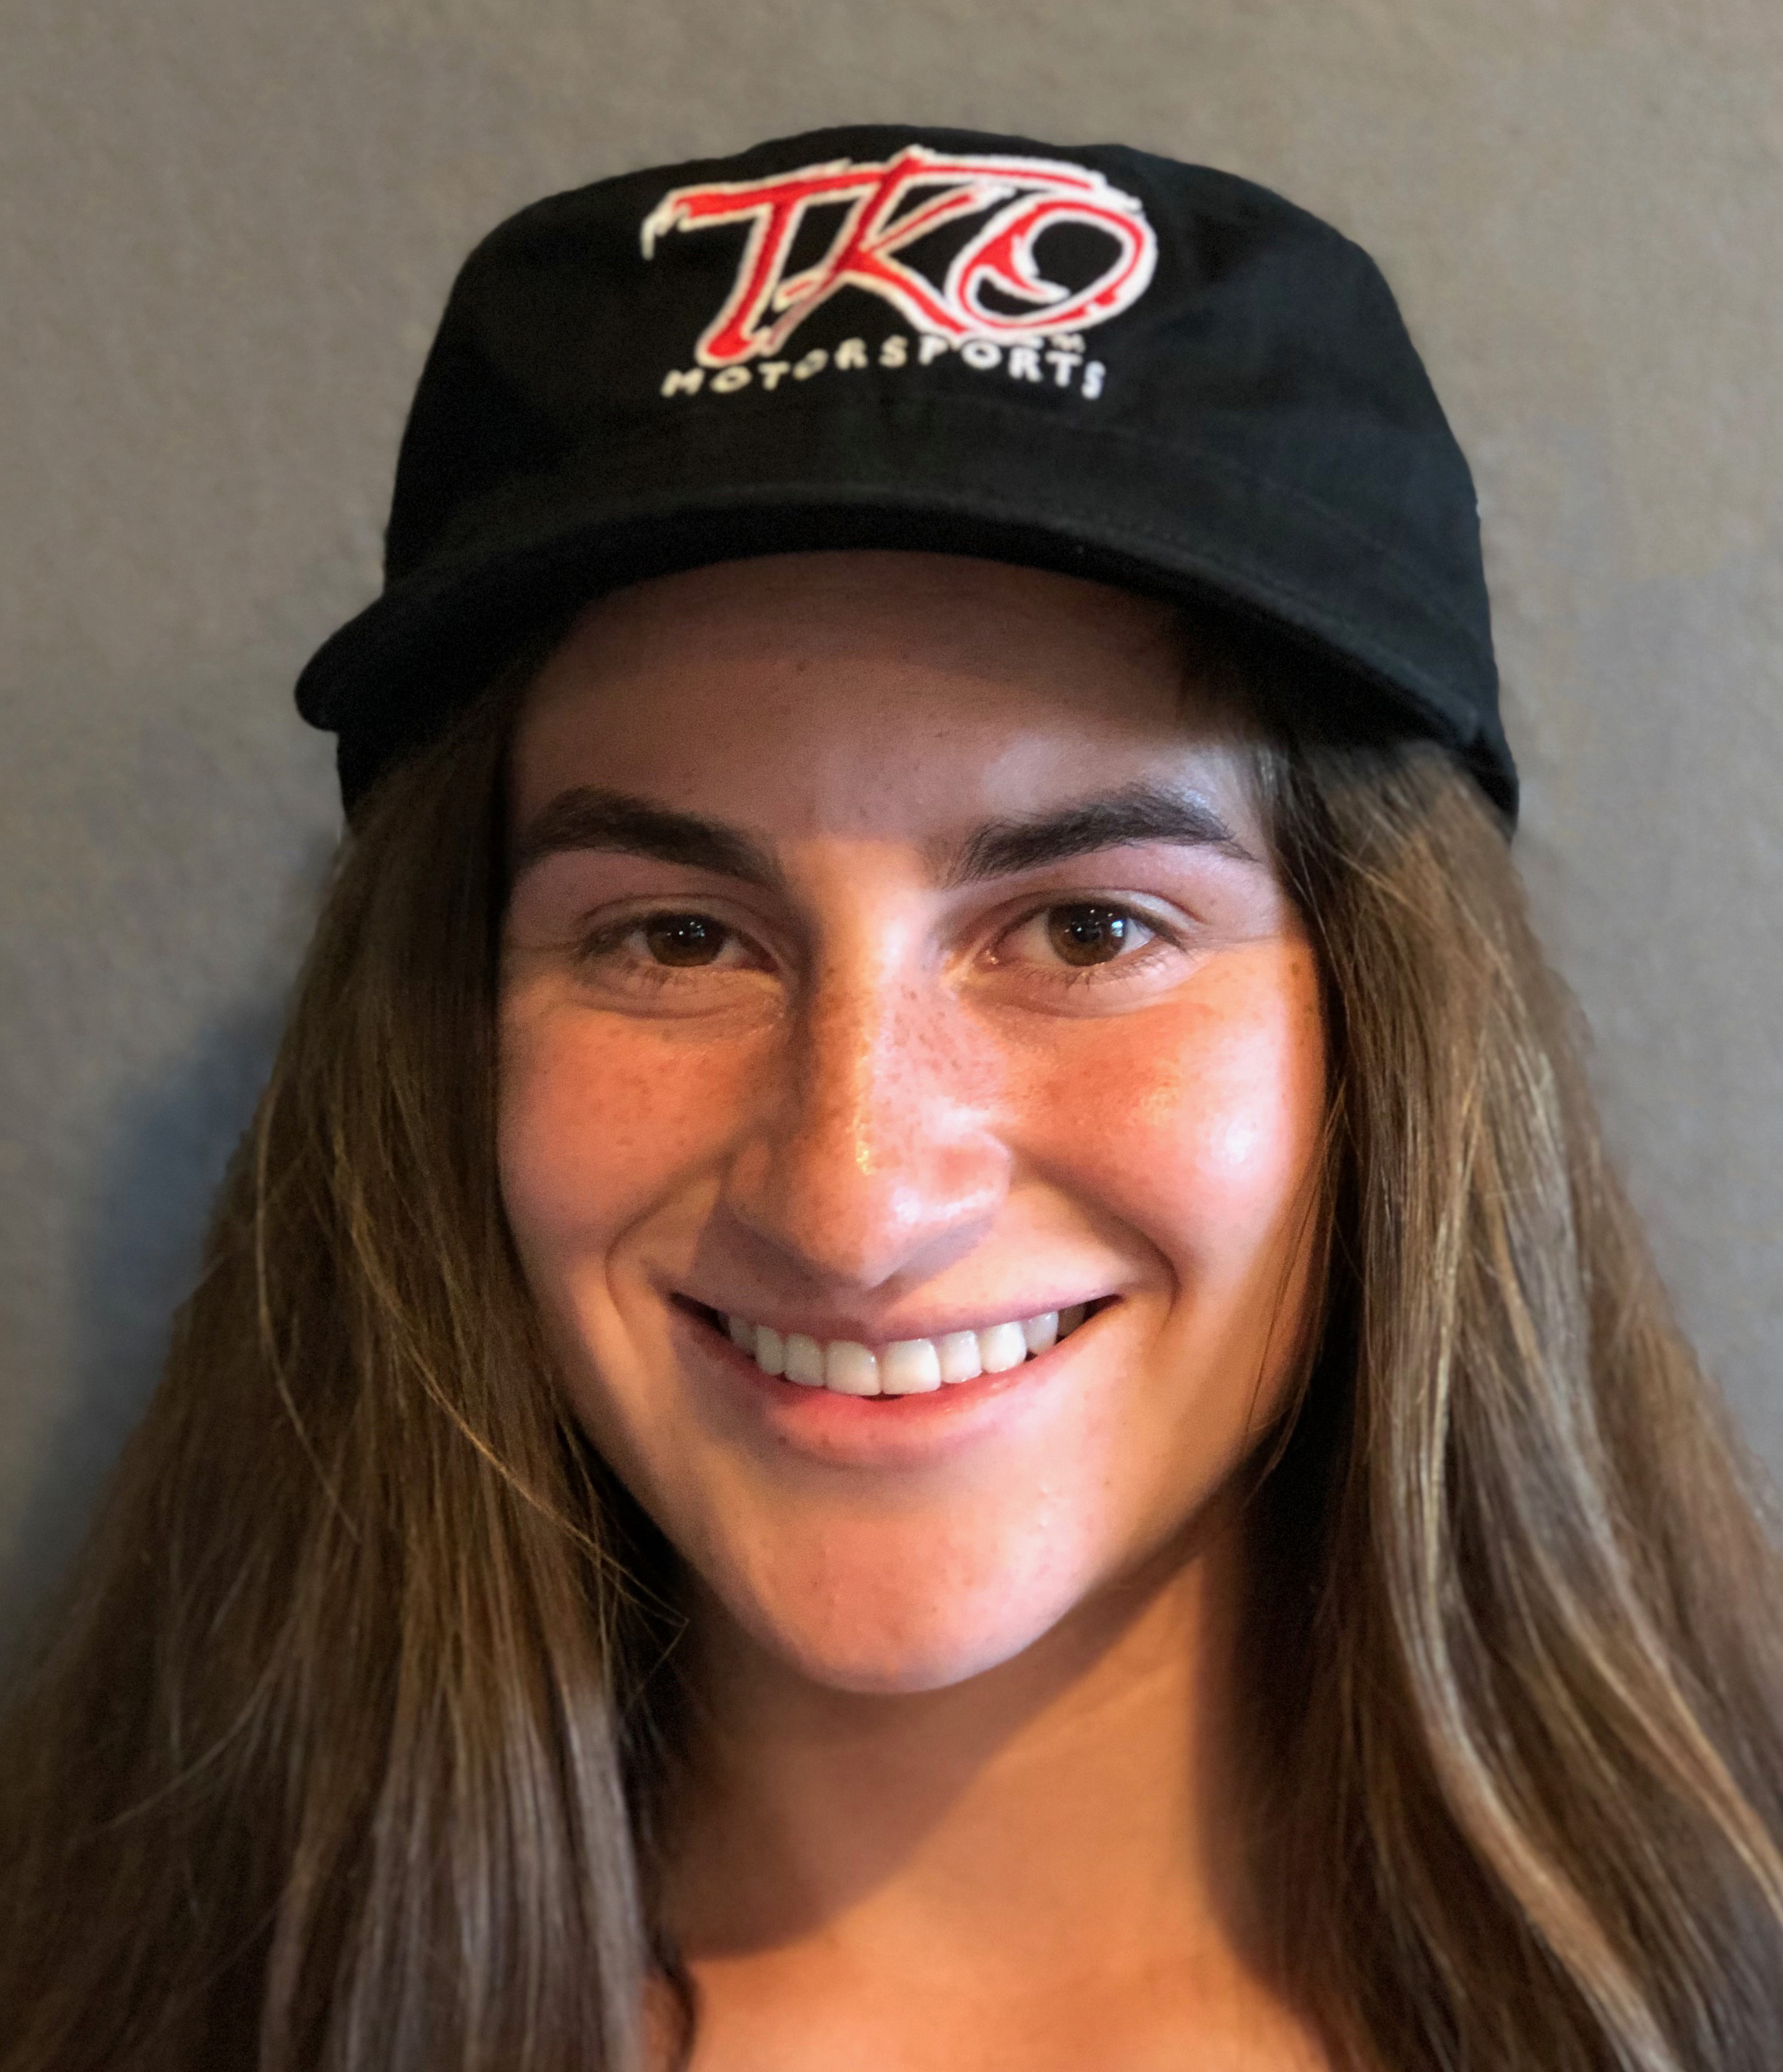 WOMEN'S SHORT BILL CADET CAP WITH TKO LOGO